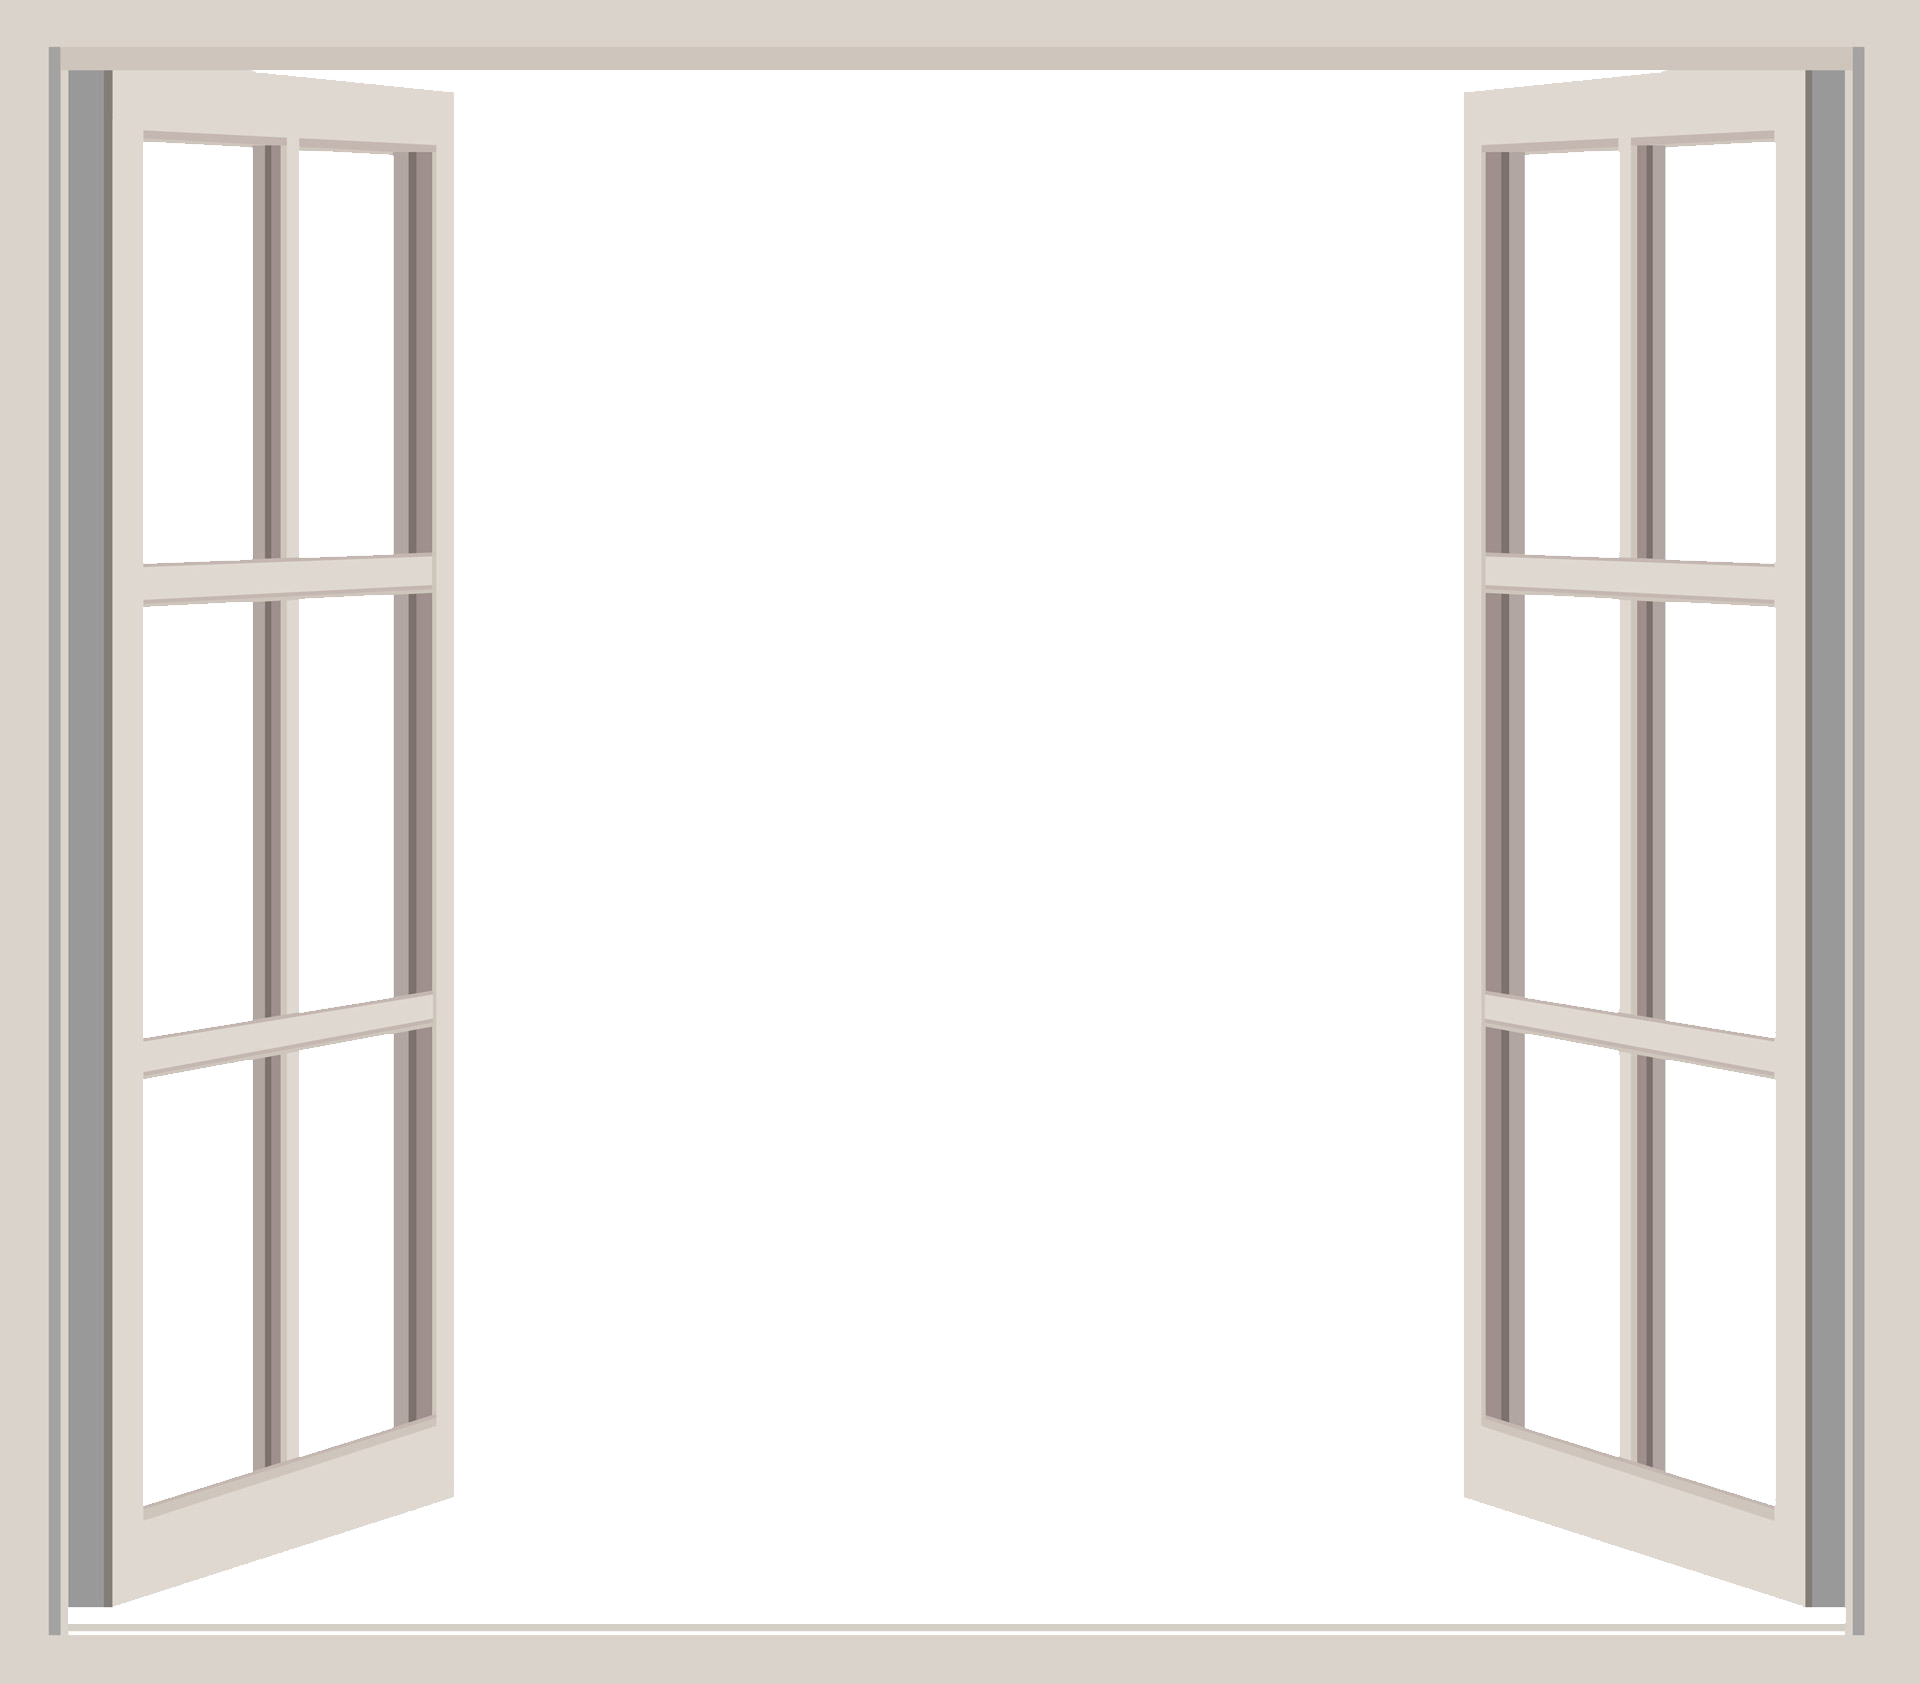 Can windows open png files. Window images free download